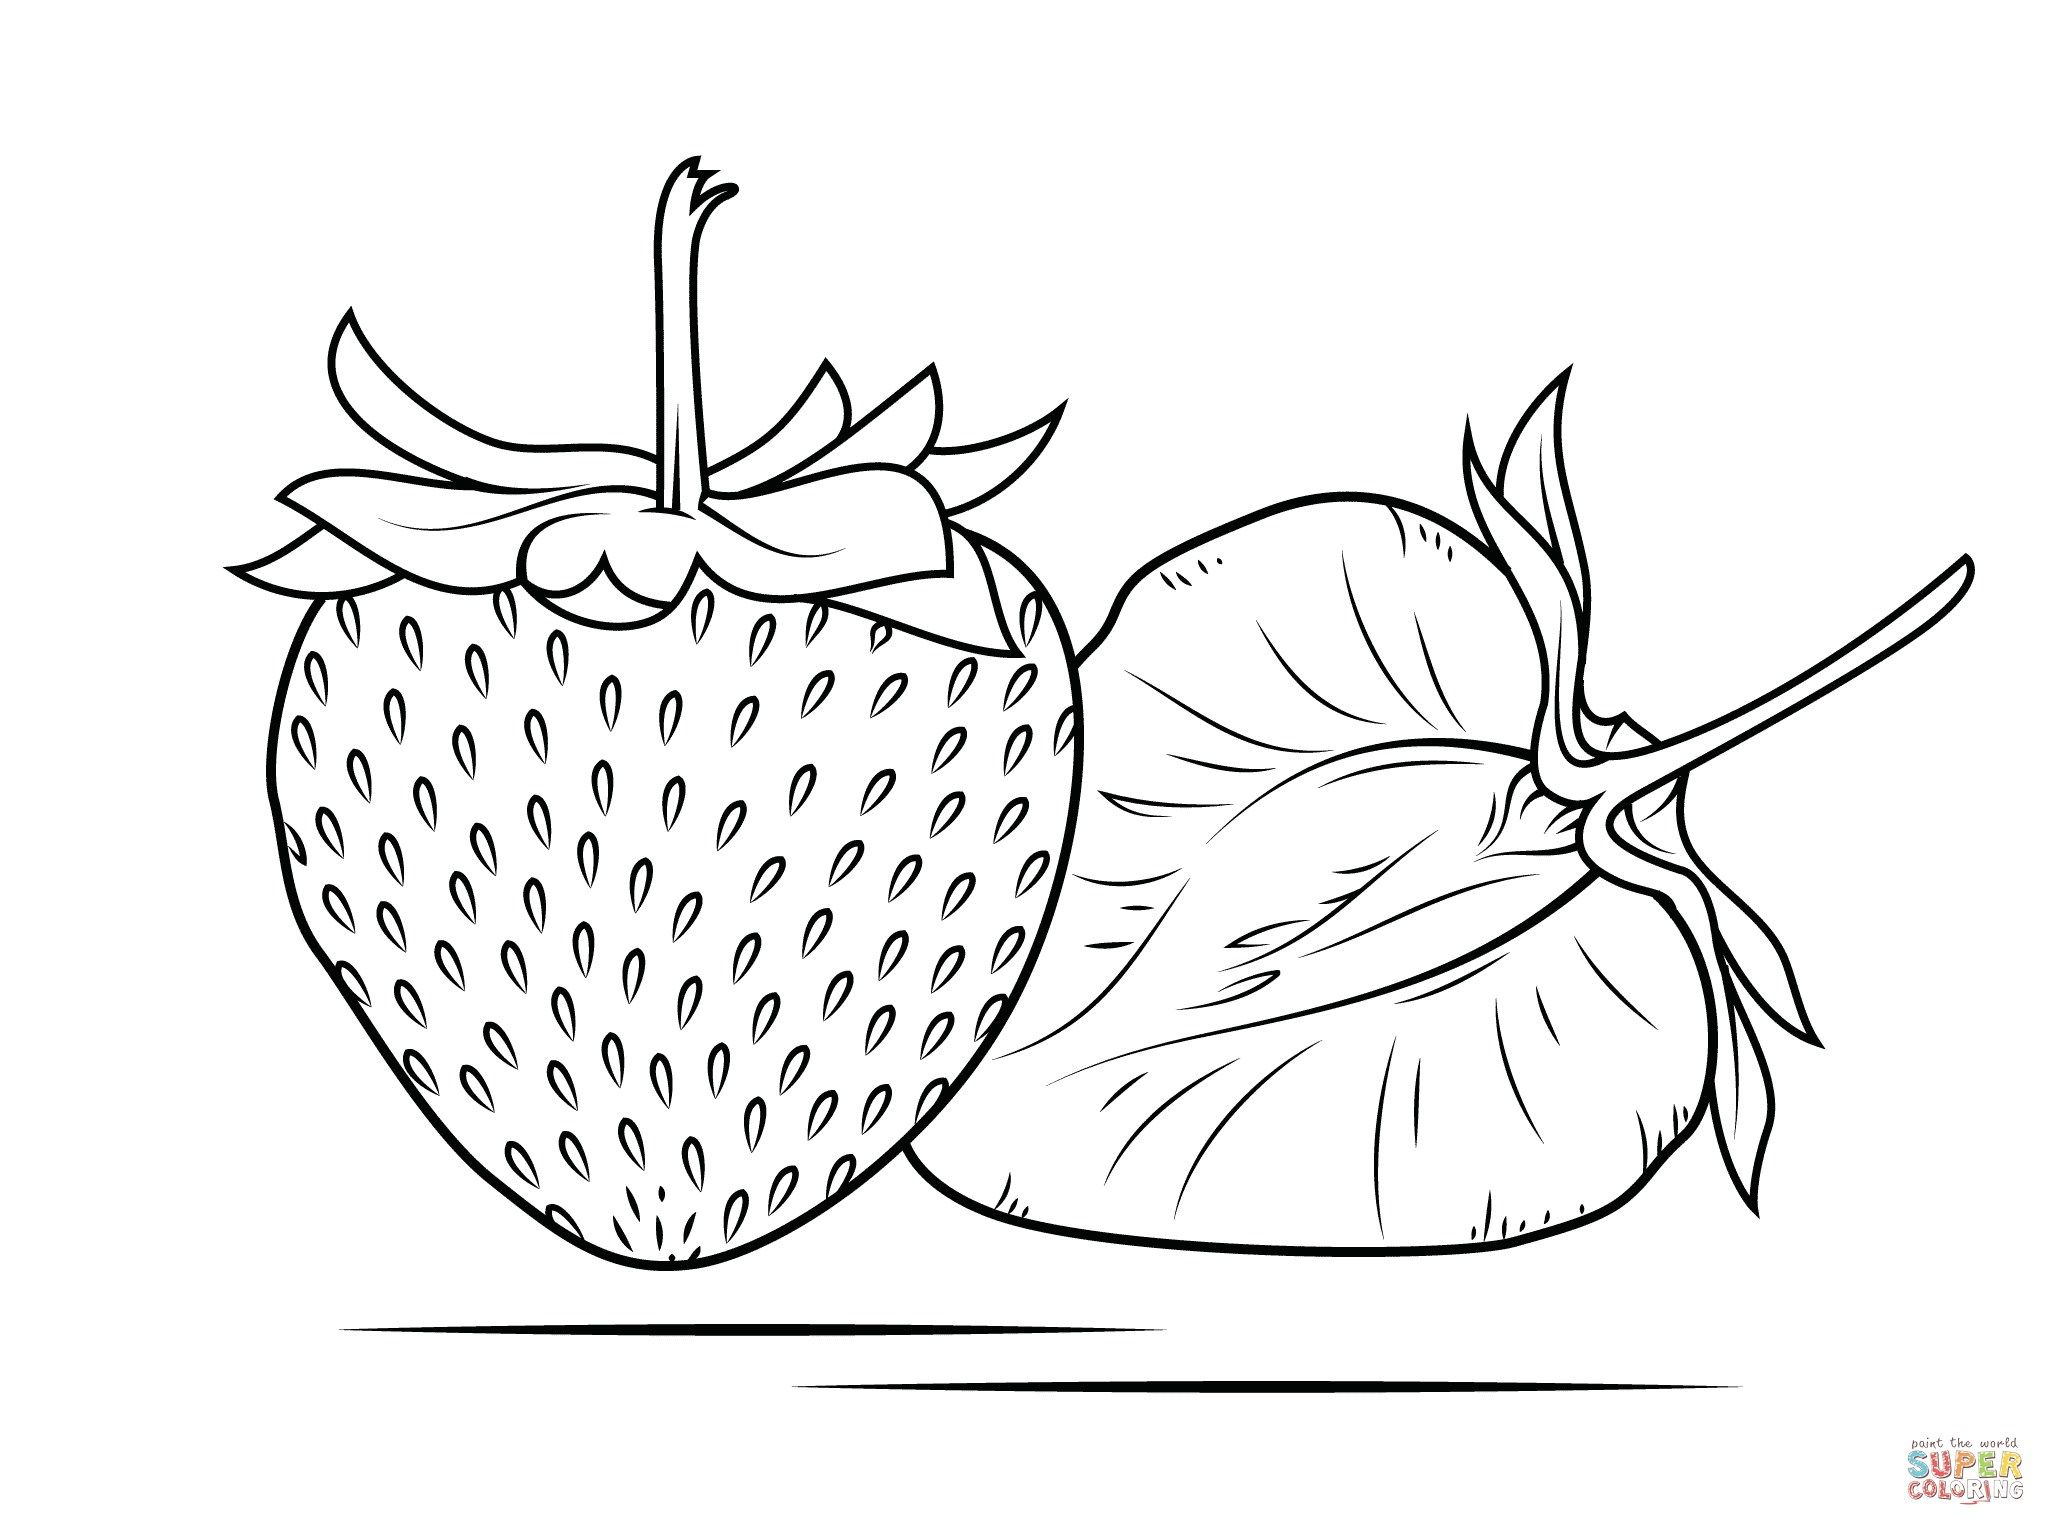 24 Pretty Photo Of Strawberry Coloring Page Davemelillo Com Free Coloring Pages Animal Coloring Pages Mandala Coloring Pages